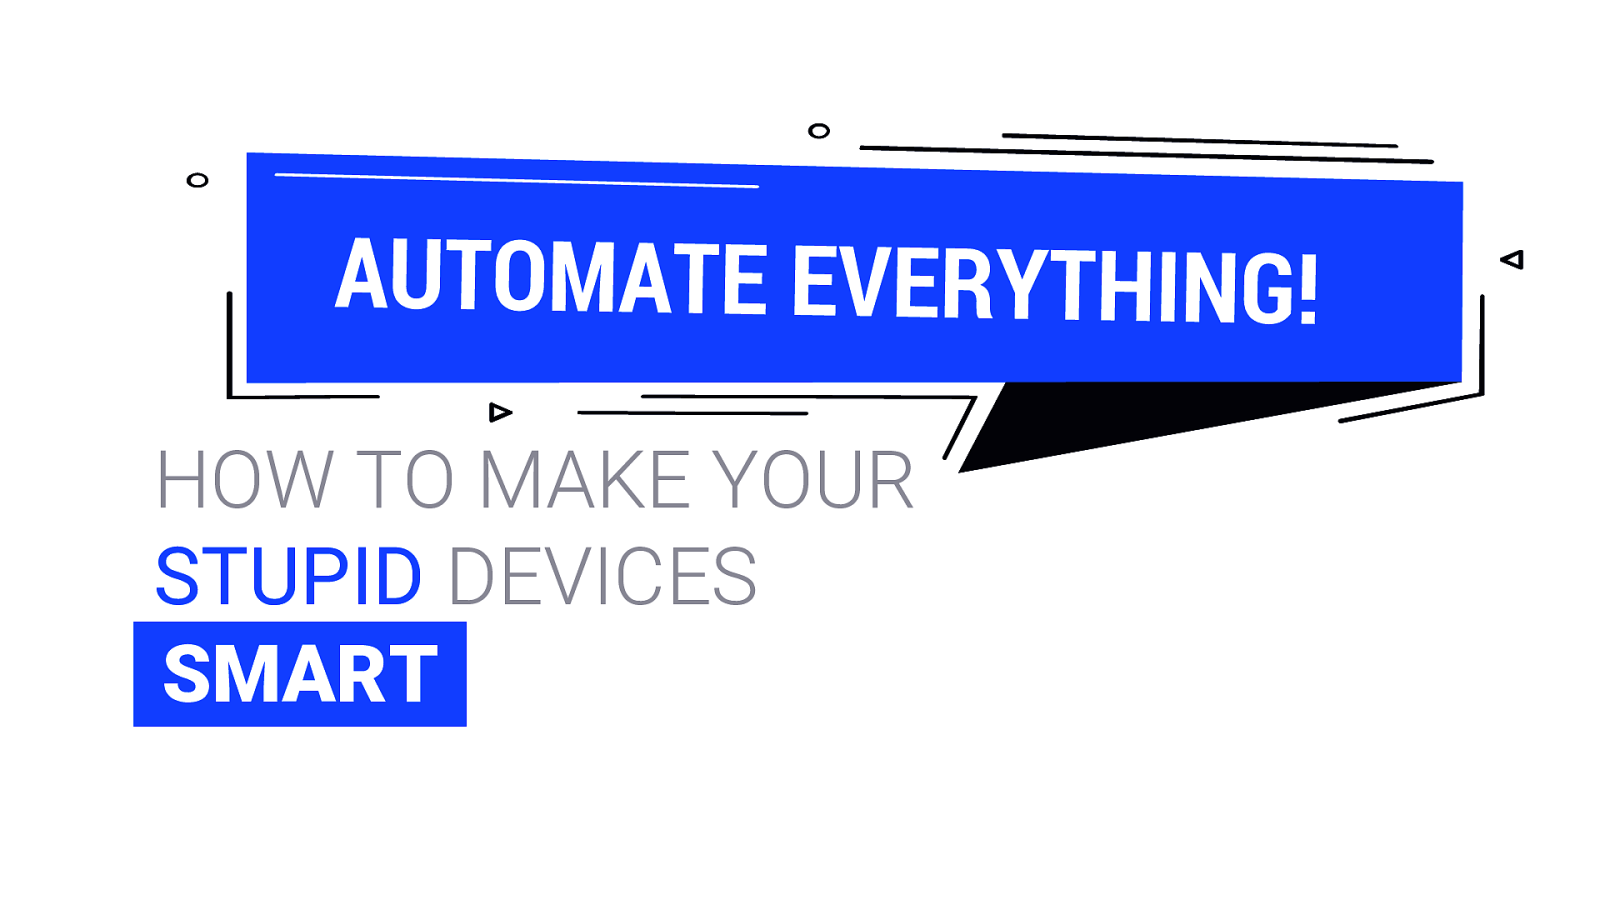 Automate Everything! How to make your stupid device smart